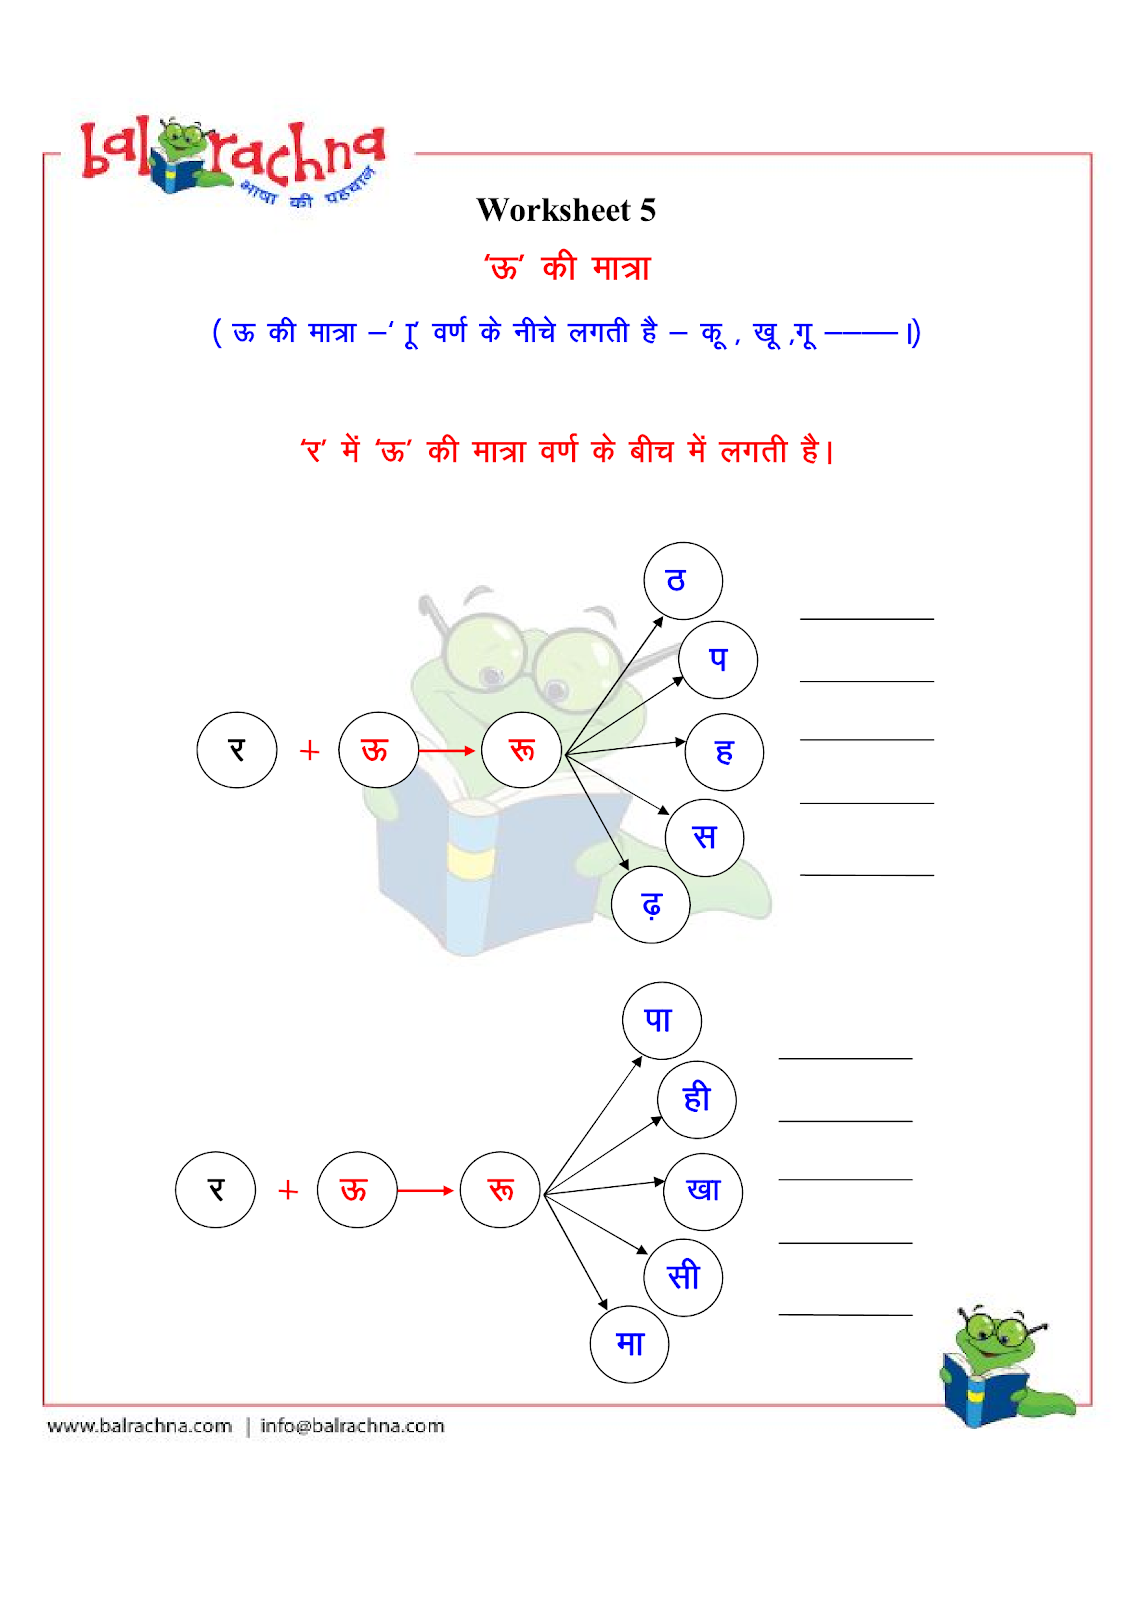 Worksheet For Hindi Matra Printable Worksheets And Activities For Teachers Parents Tutors And Homeschool Families